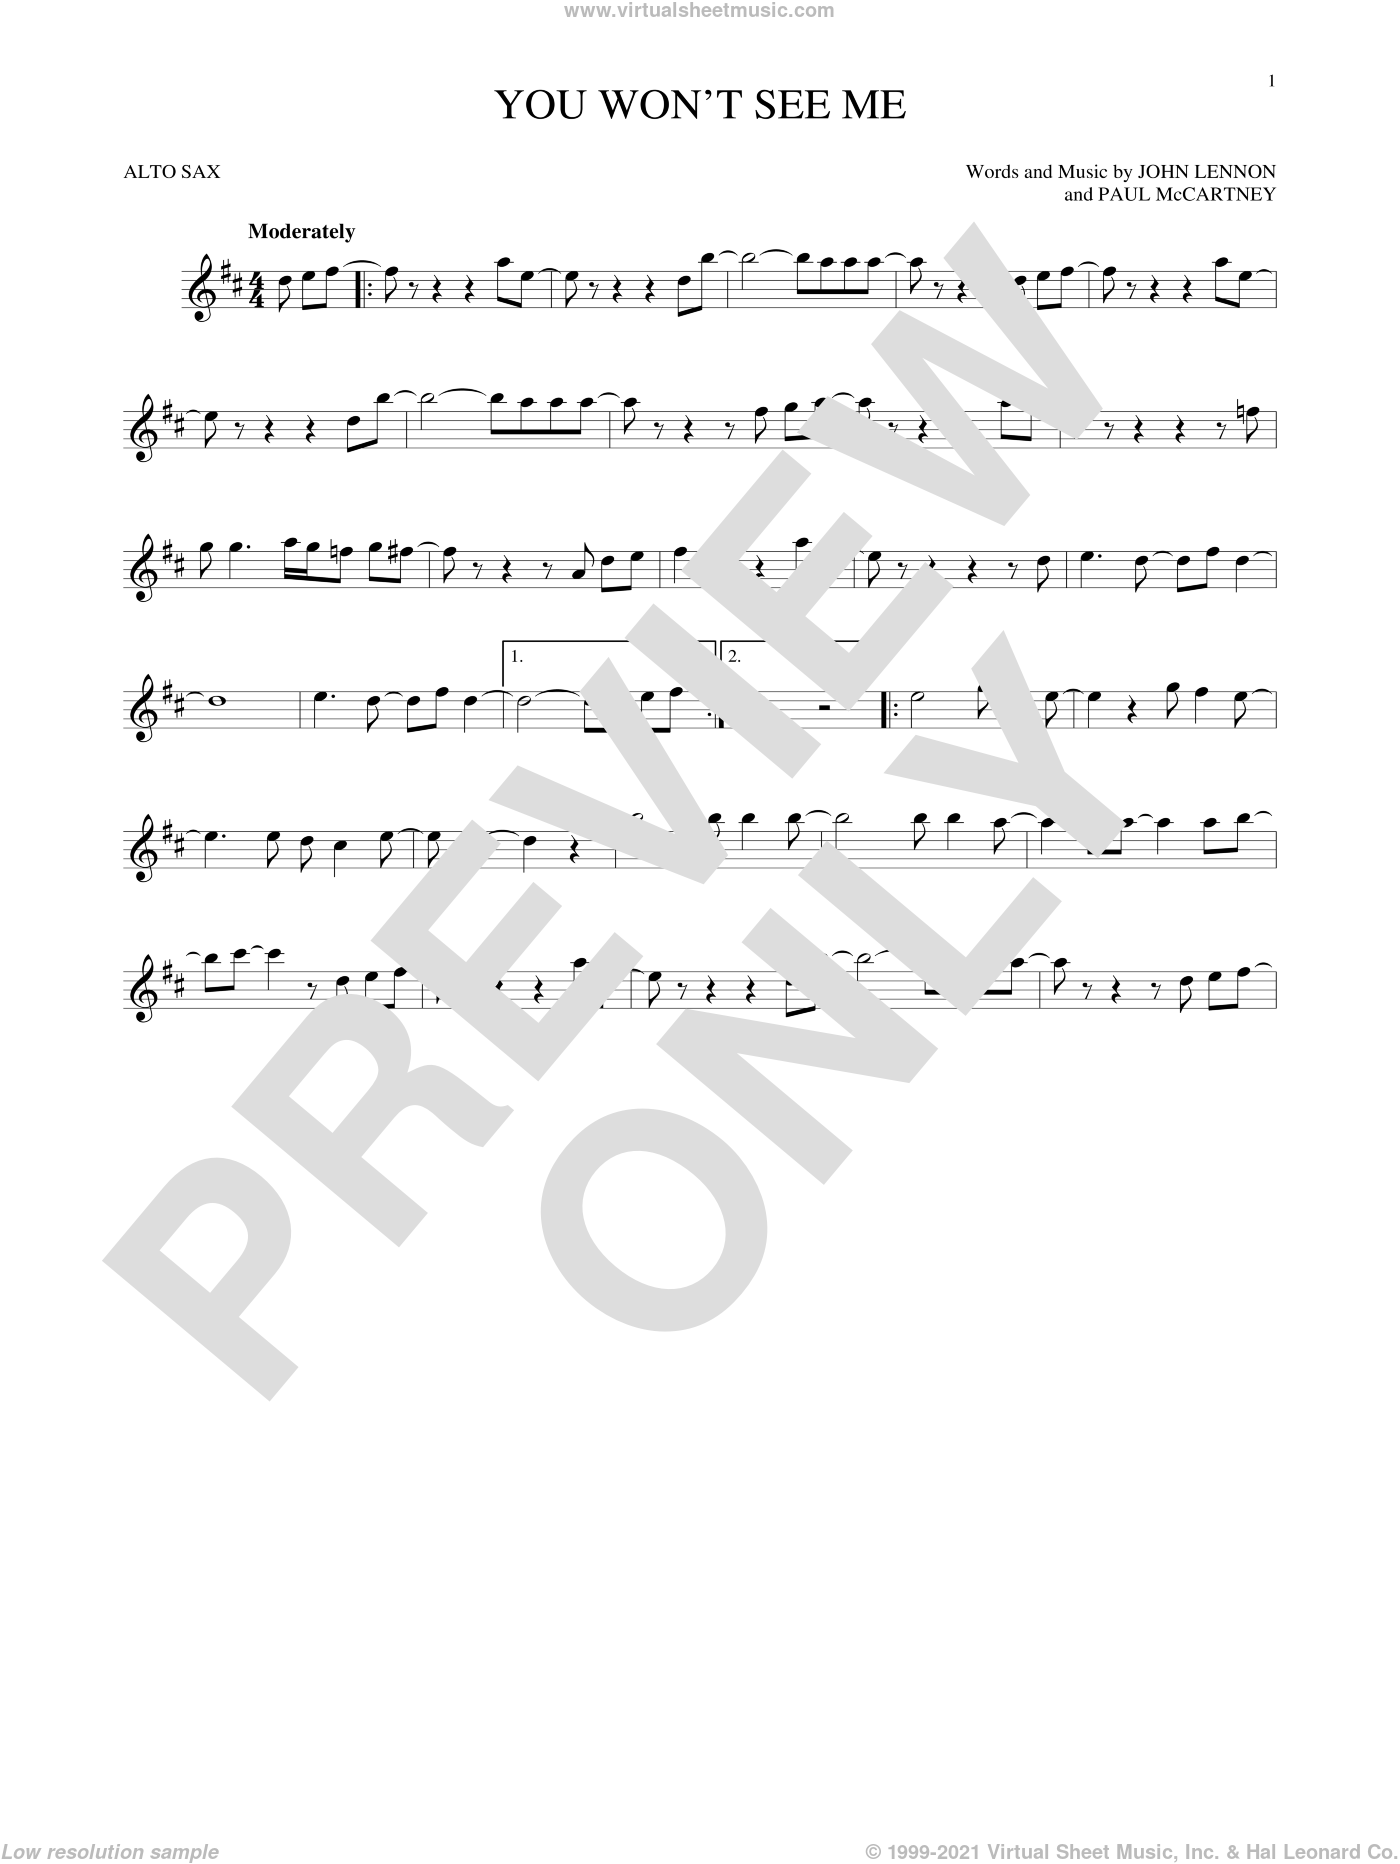 You Won't See Me sheet music for alto saxophone solo by The Beatles, John Lennon and Paul McCartney, intermediate skill level